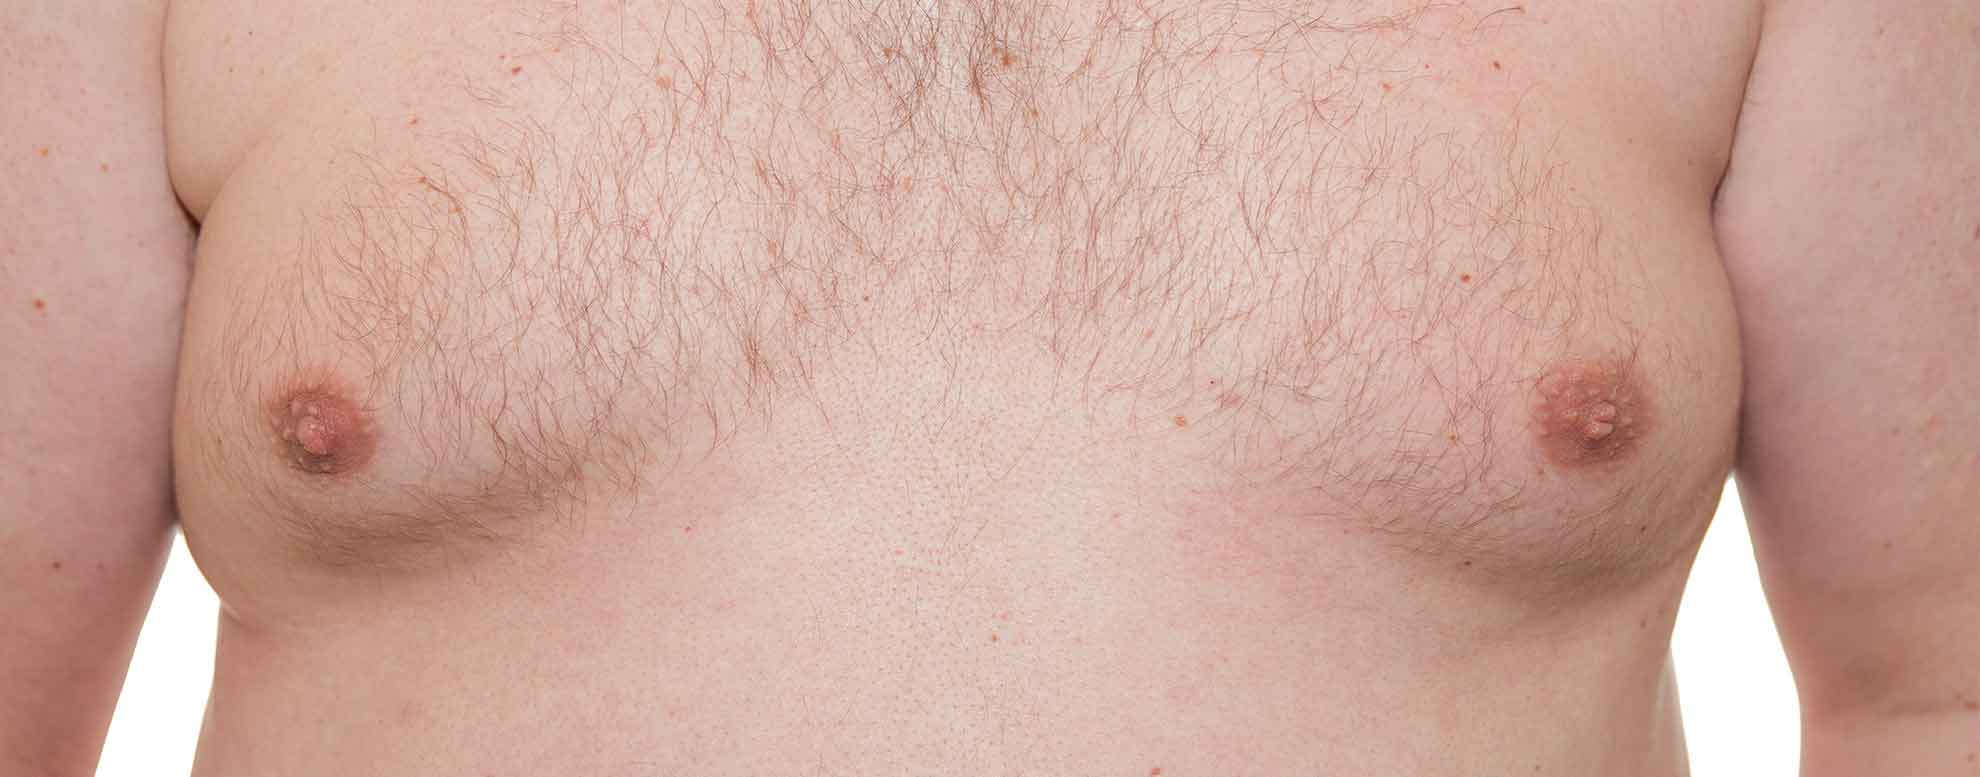 close up of a man's chest with gynecomastia